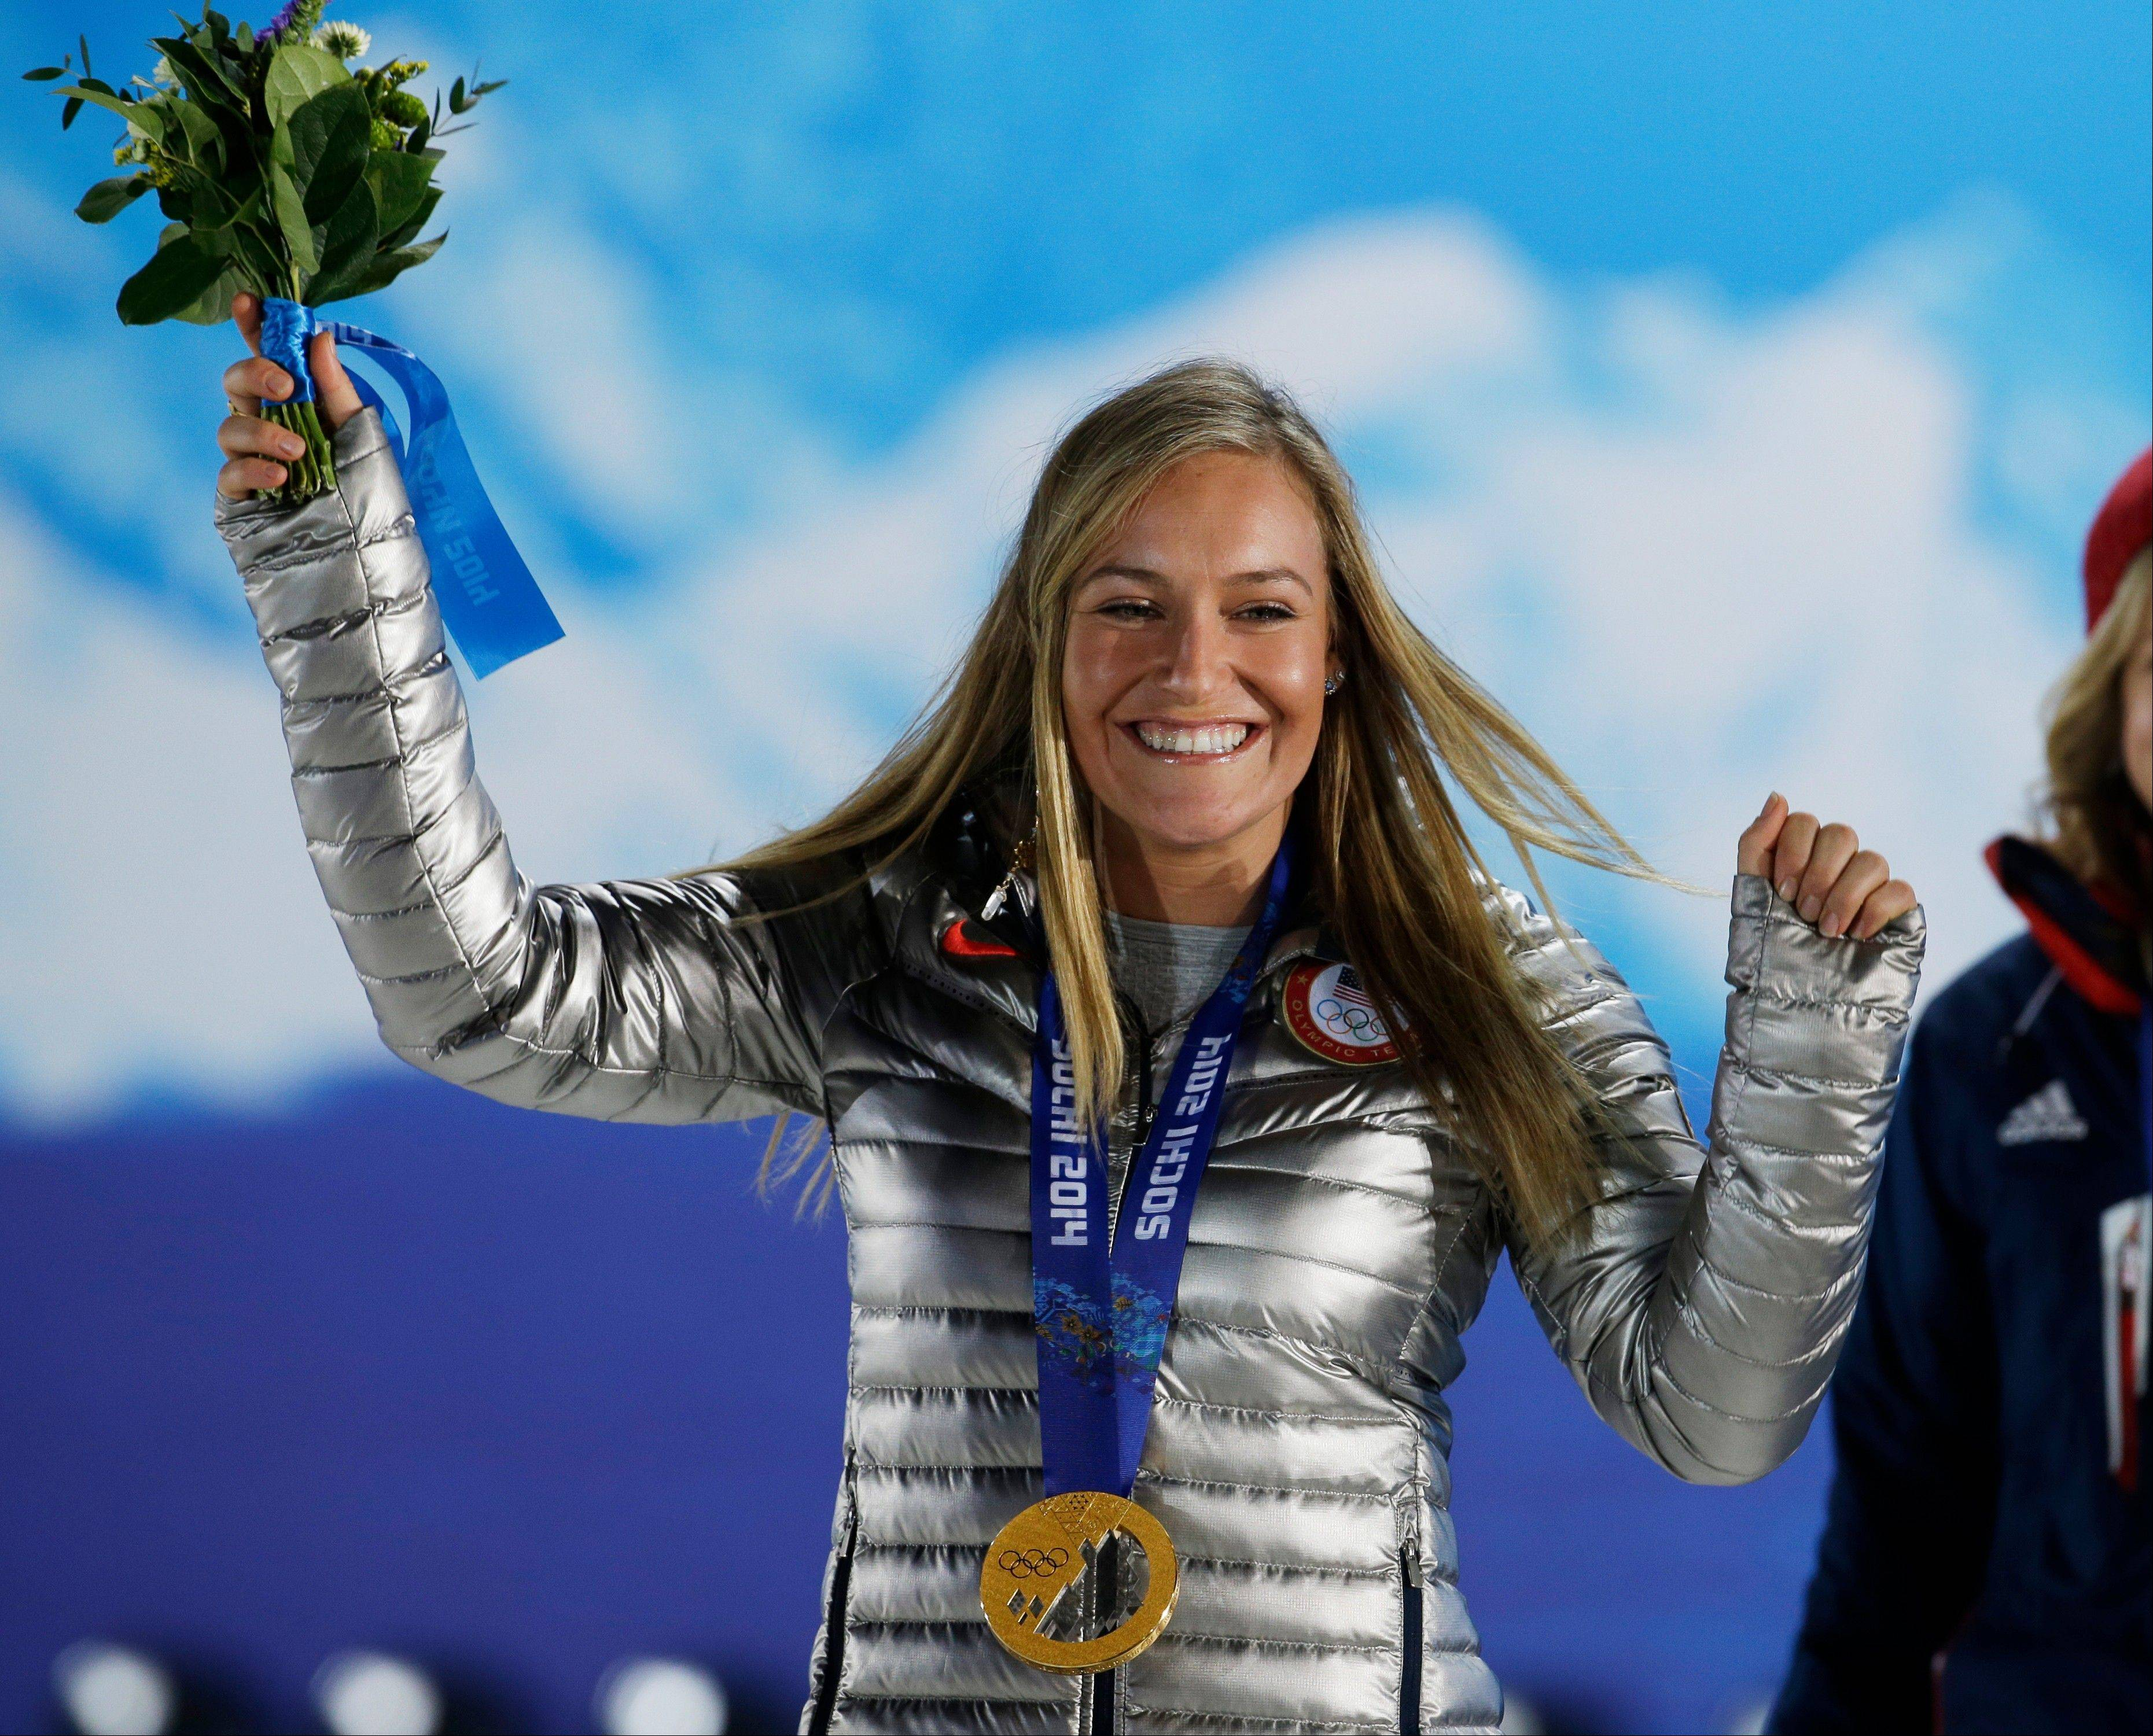 Gold medalist in the women's snowboard slopestyle Jamie Anderson of the United States smiles during the medals ceremony at the 2014 Winter Olympics, Sunday, Feb. 9, 2014, in Sochi, Russia.